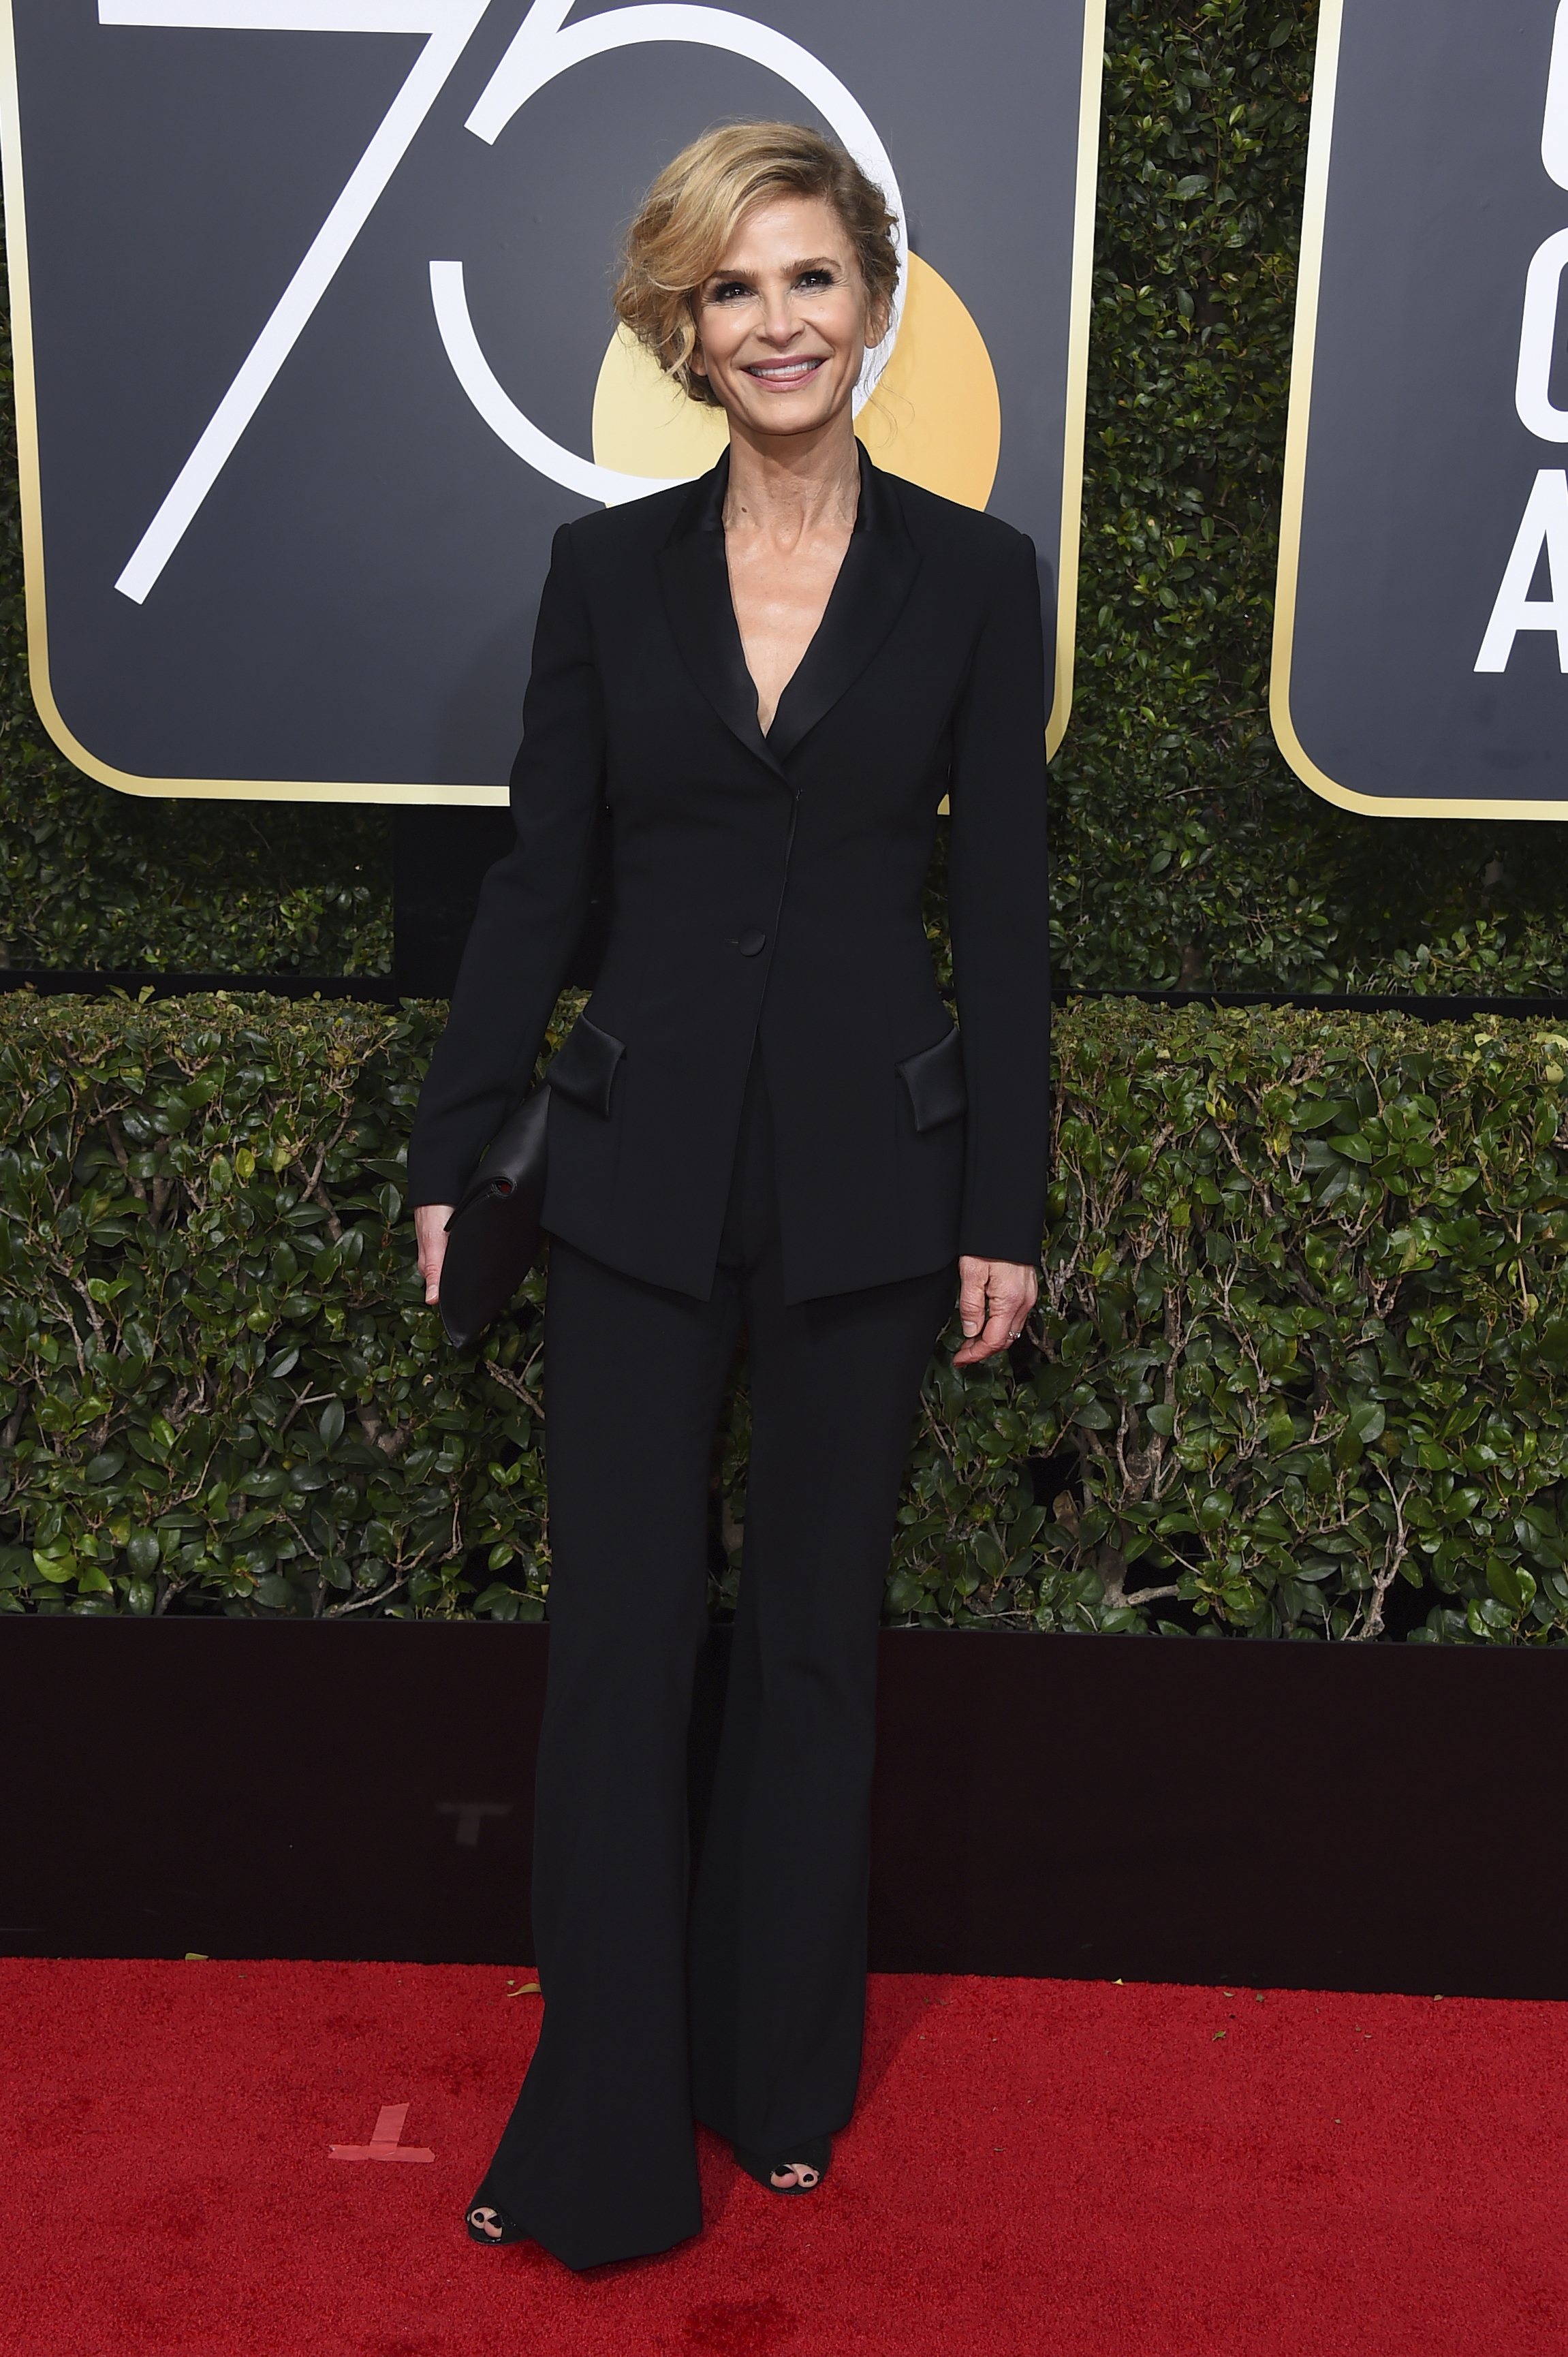 <div class='meta'><div class='origin-logo' data-origin='AP'></div><span class='caption-text' data-credit='Jordan Strauss/Invision/AP'>Kyra Sedgwick arrives at the 75th annual Golden Globe Awards at the Beverly Hilton Hotel on Sunday, Jan. 7, 2018, in Beverly Hills, Calif.</span></div>